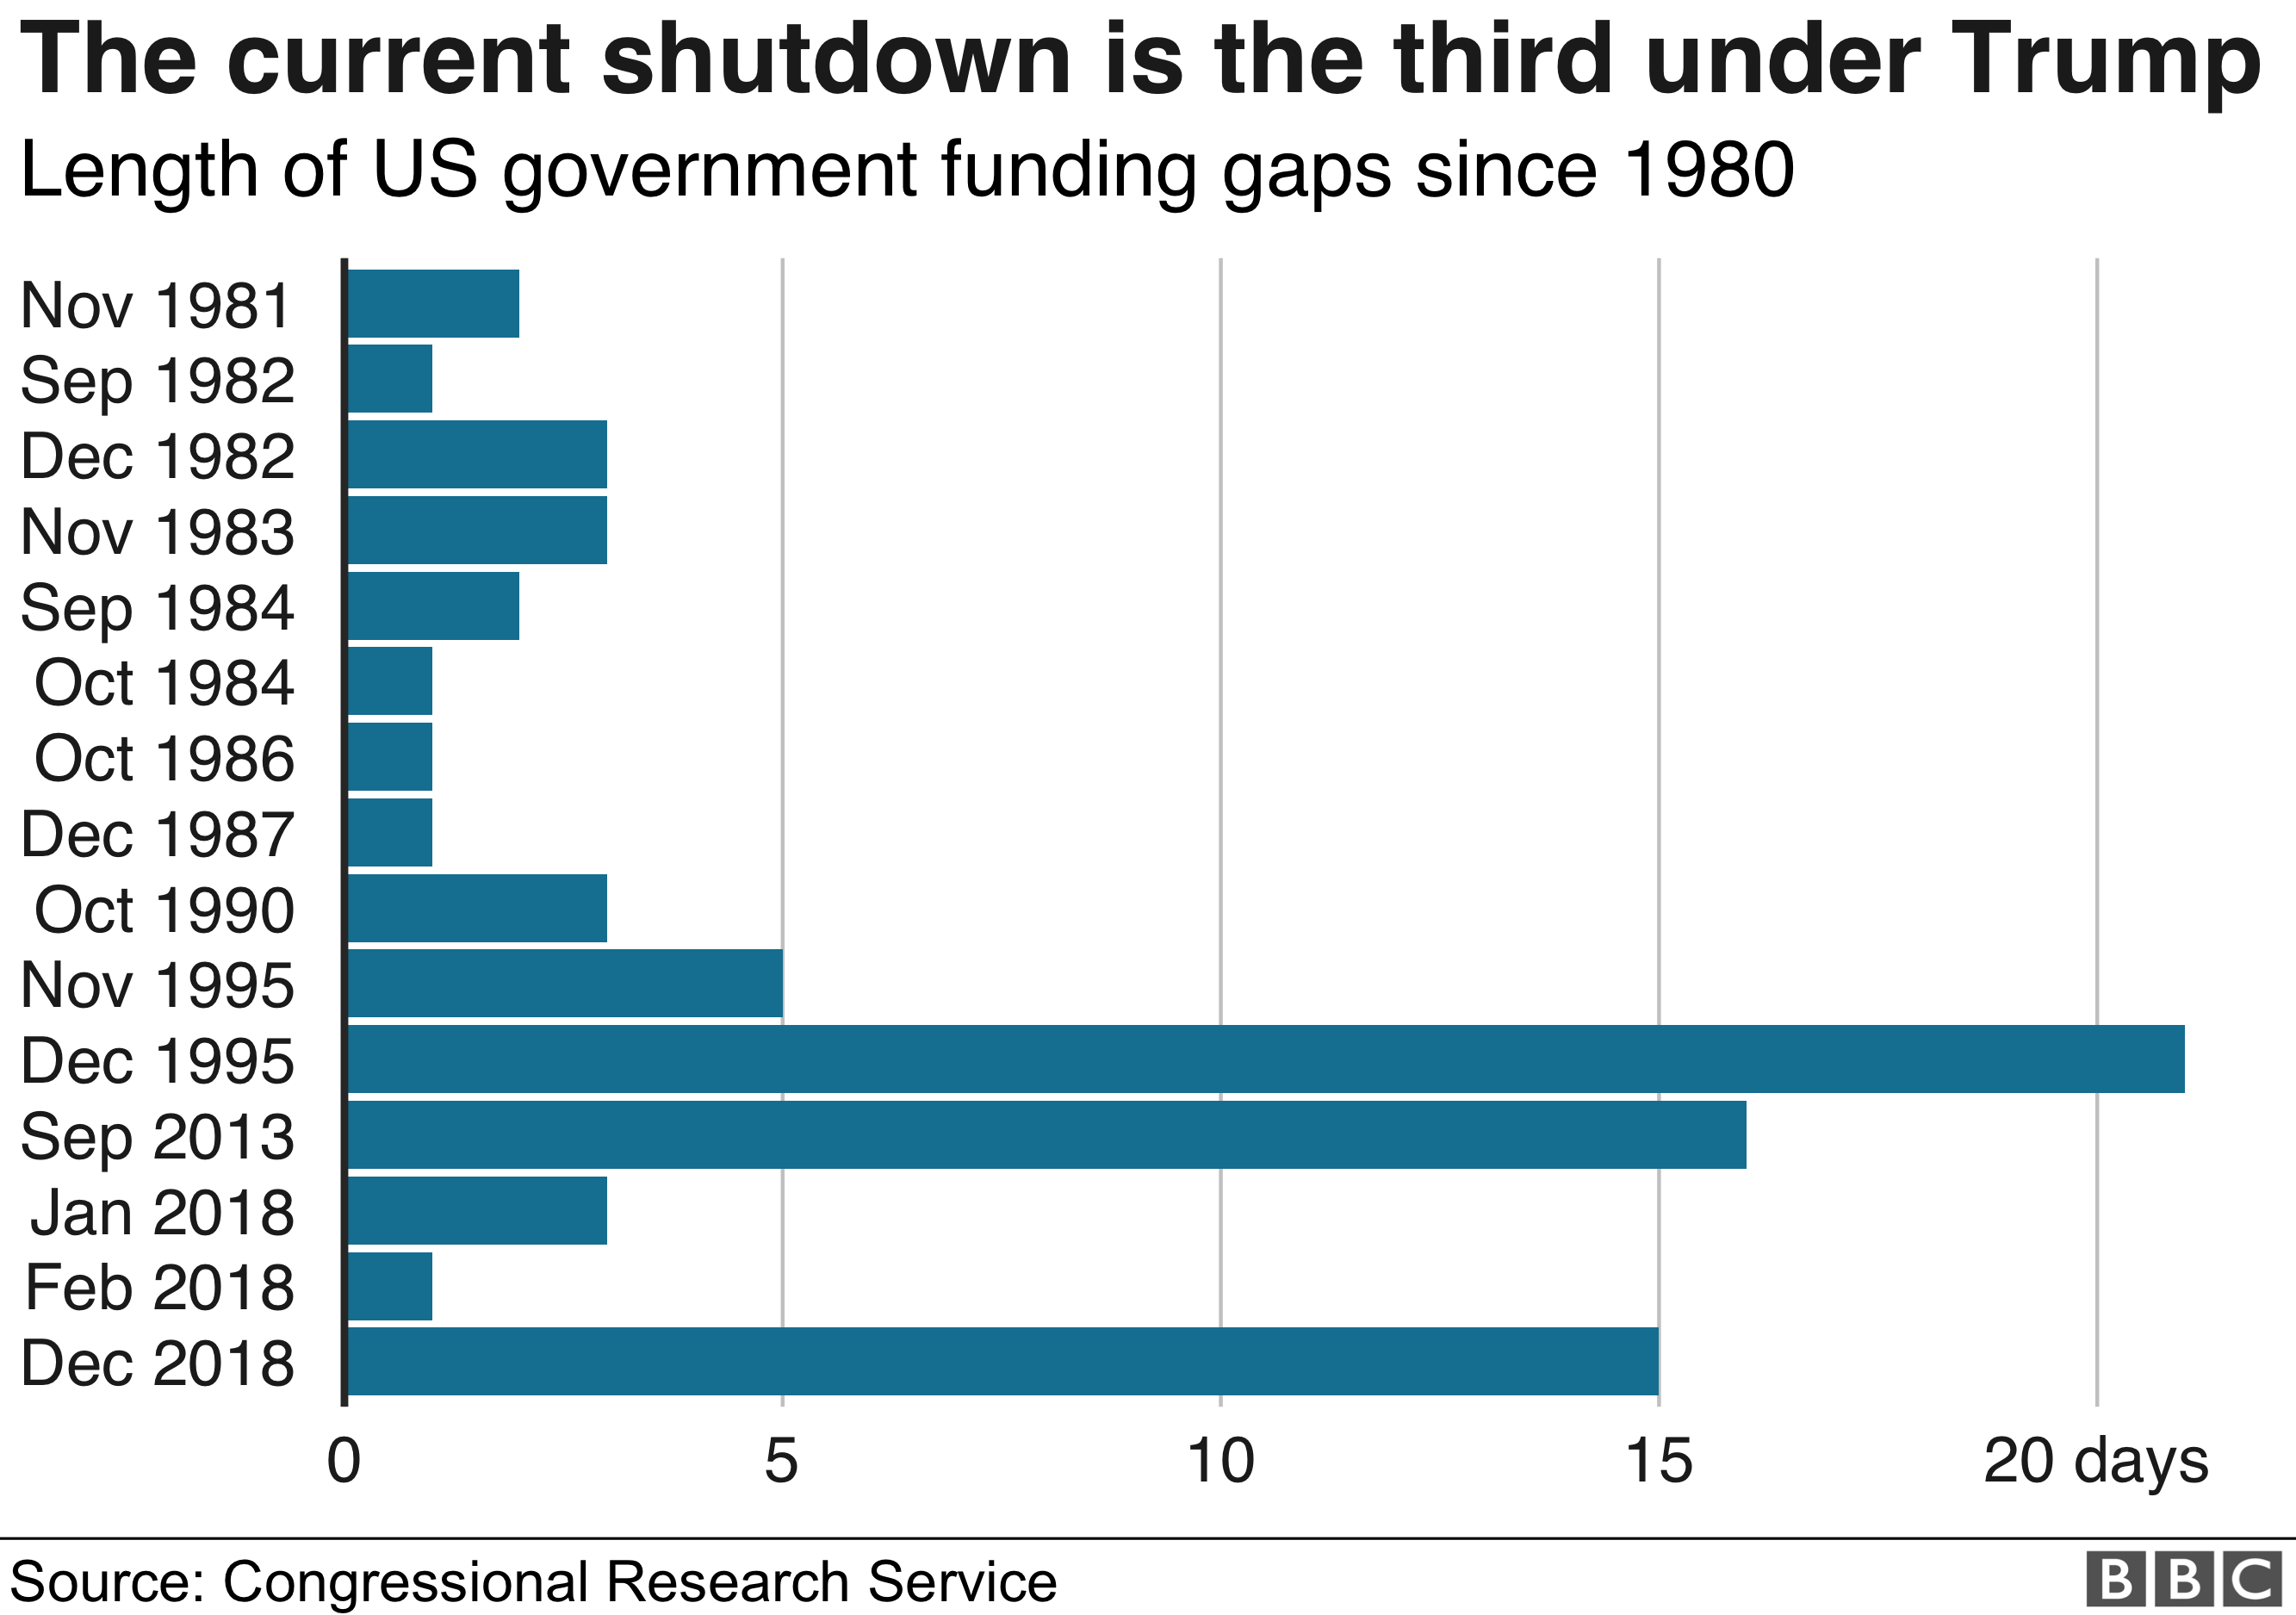 graphic showing length of shutdowns since 1980